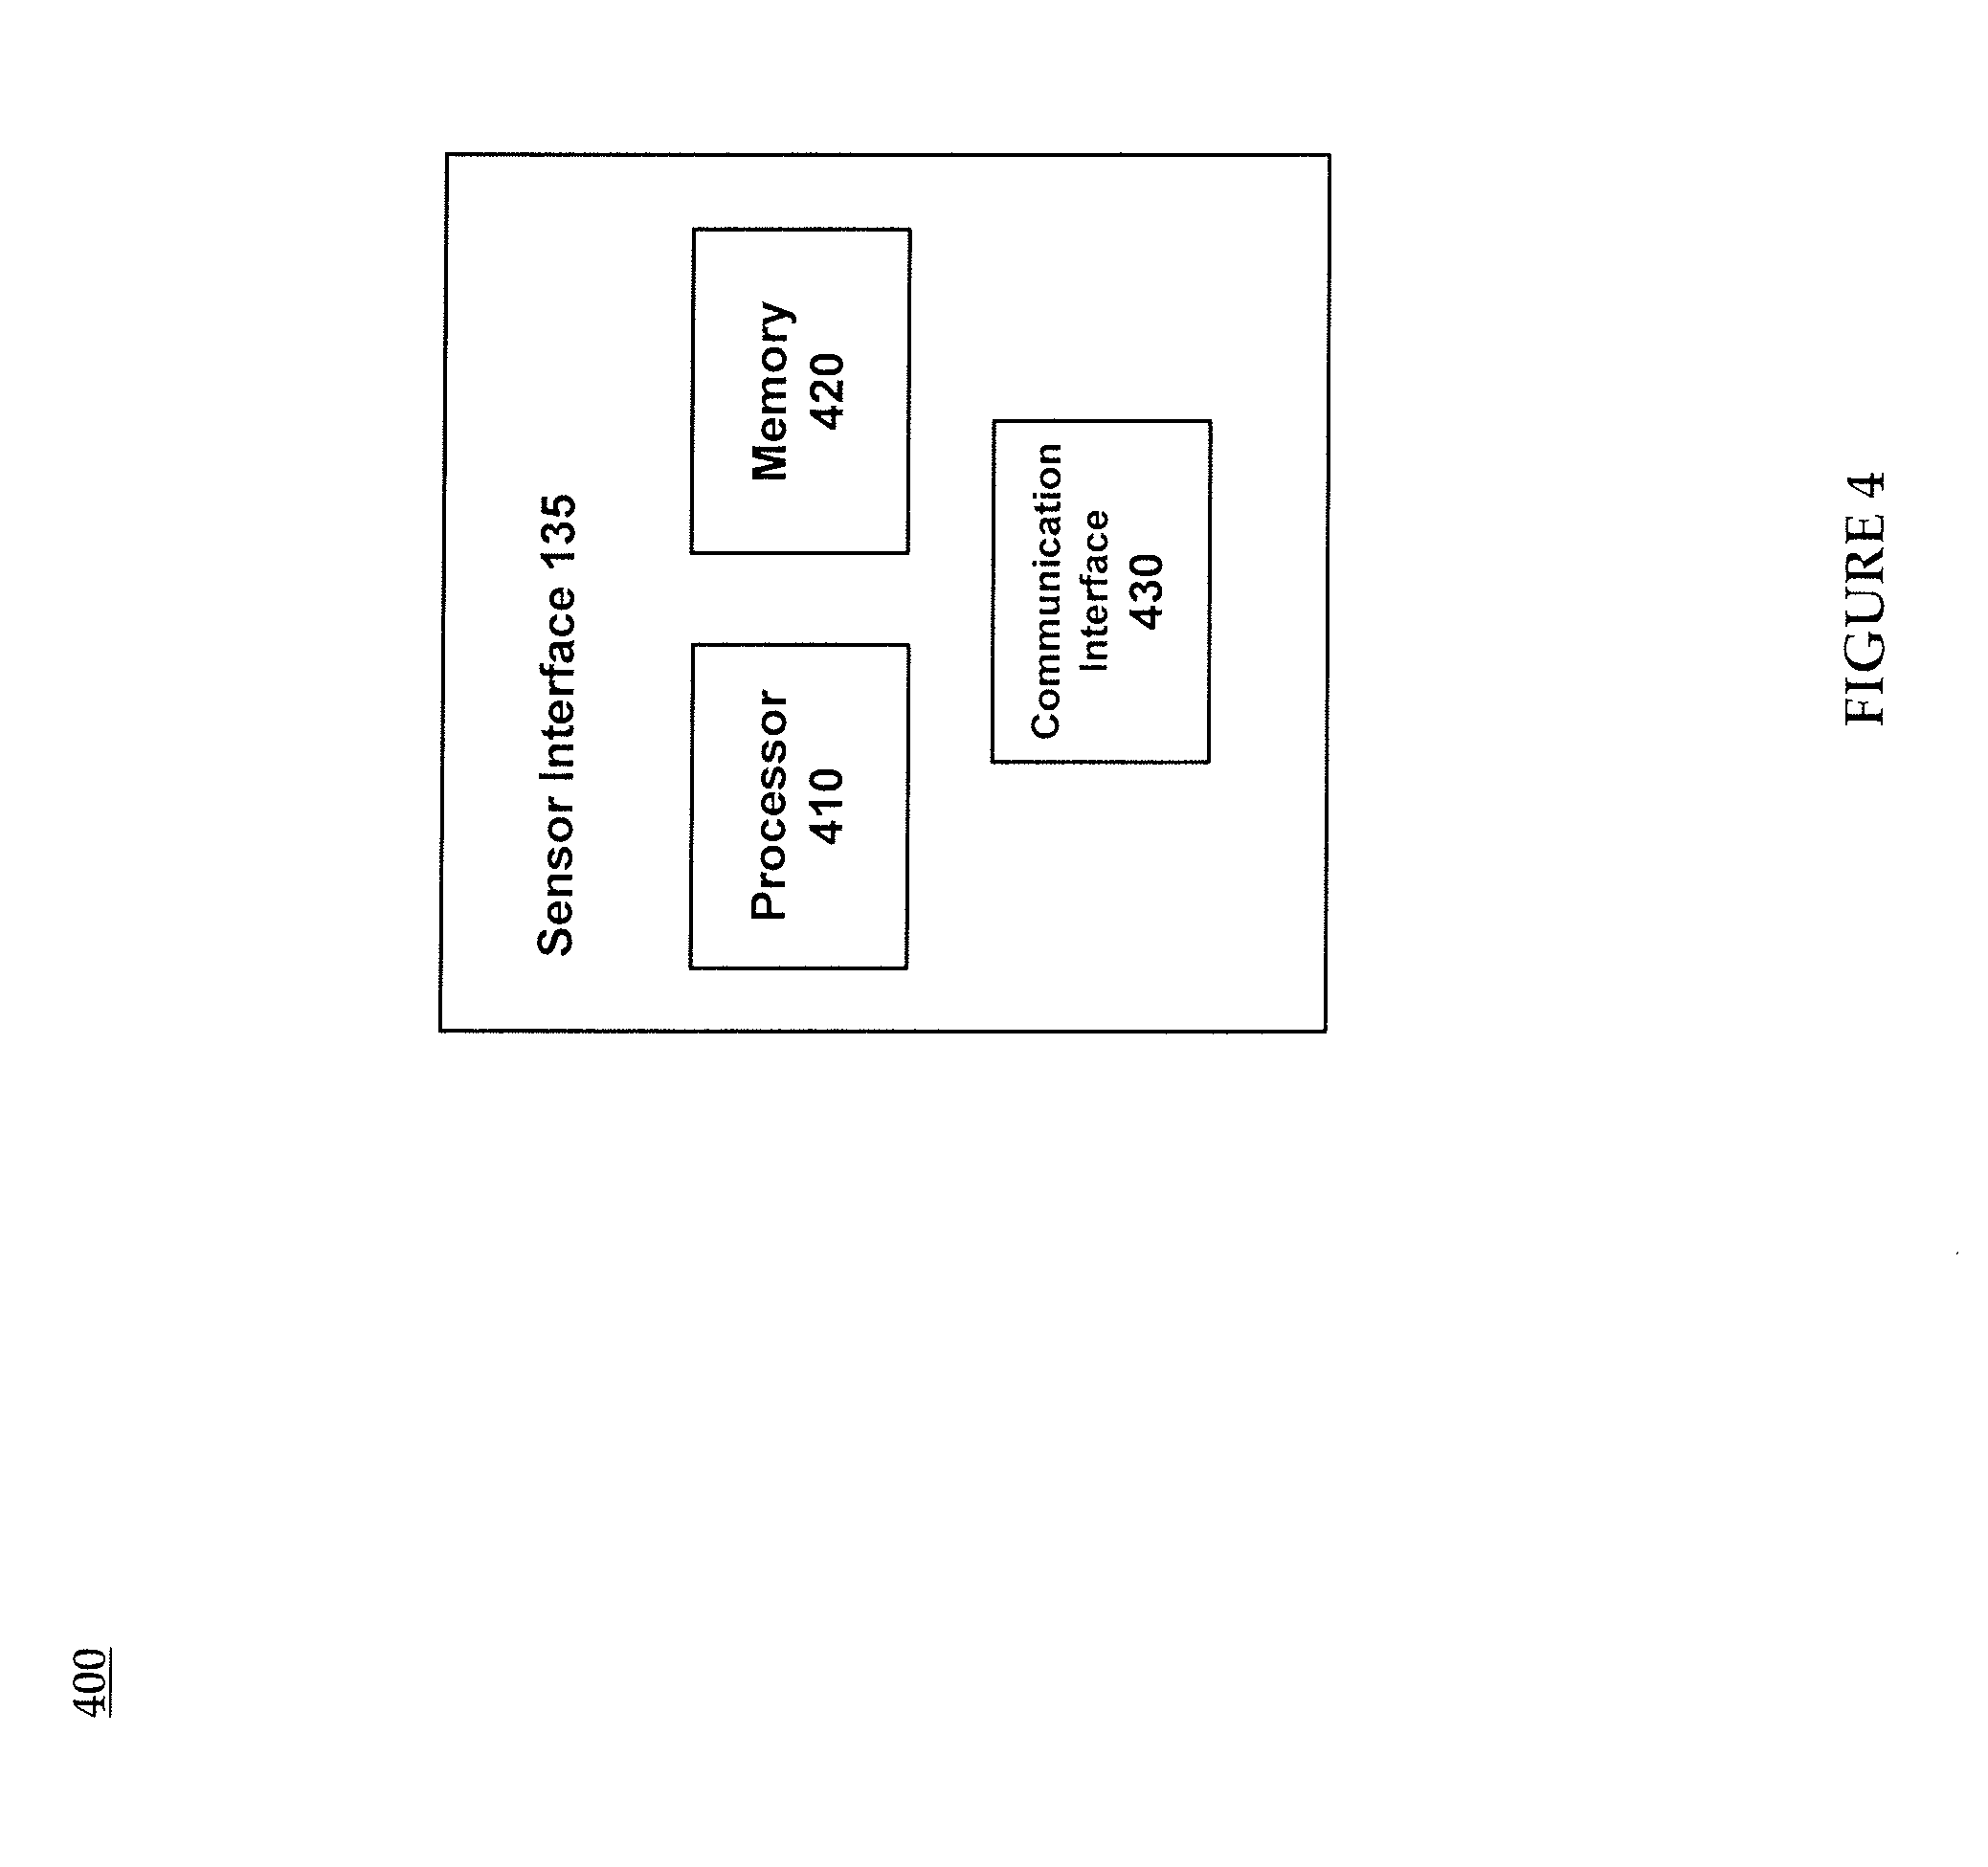 patent us20030209999 wireless remote control systems for dimming rh standfit co